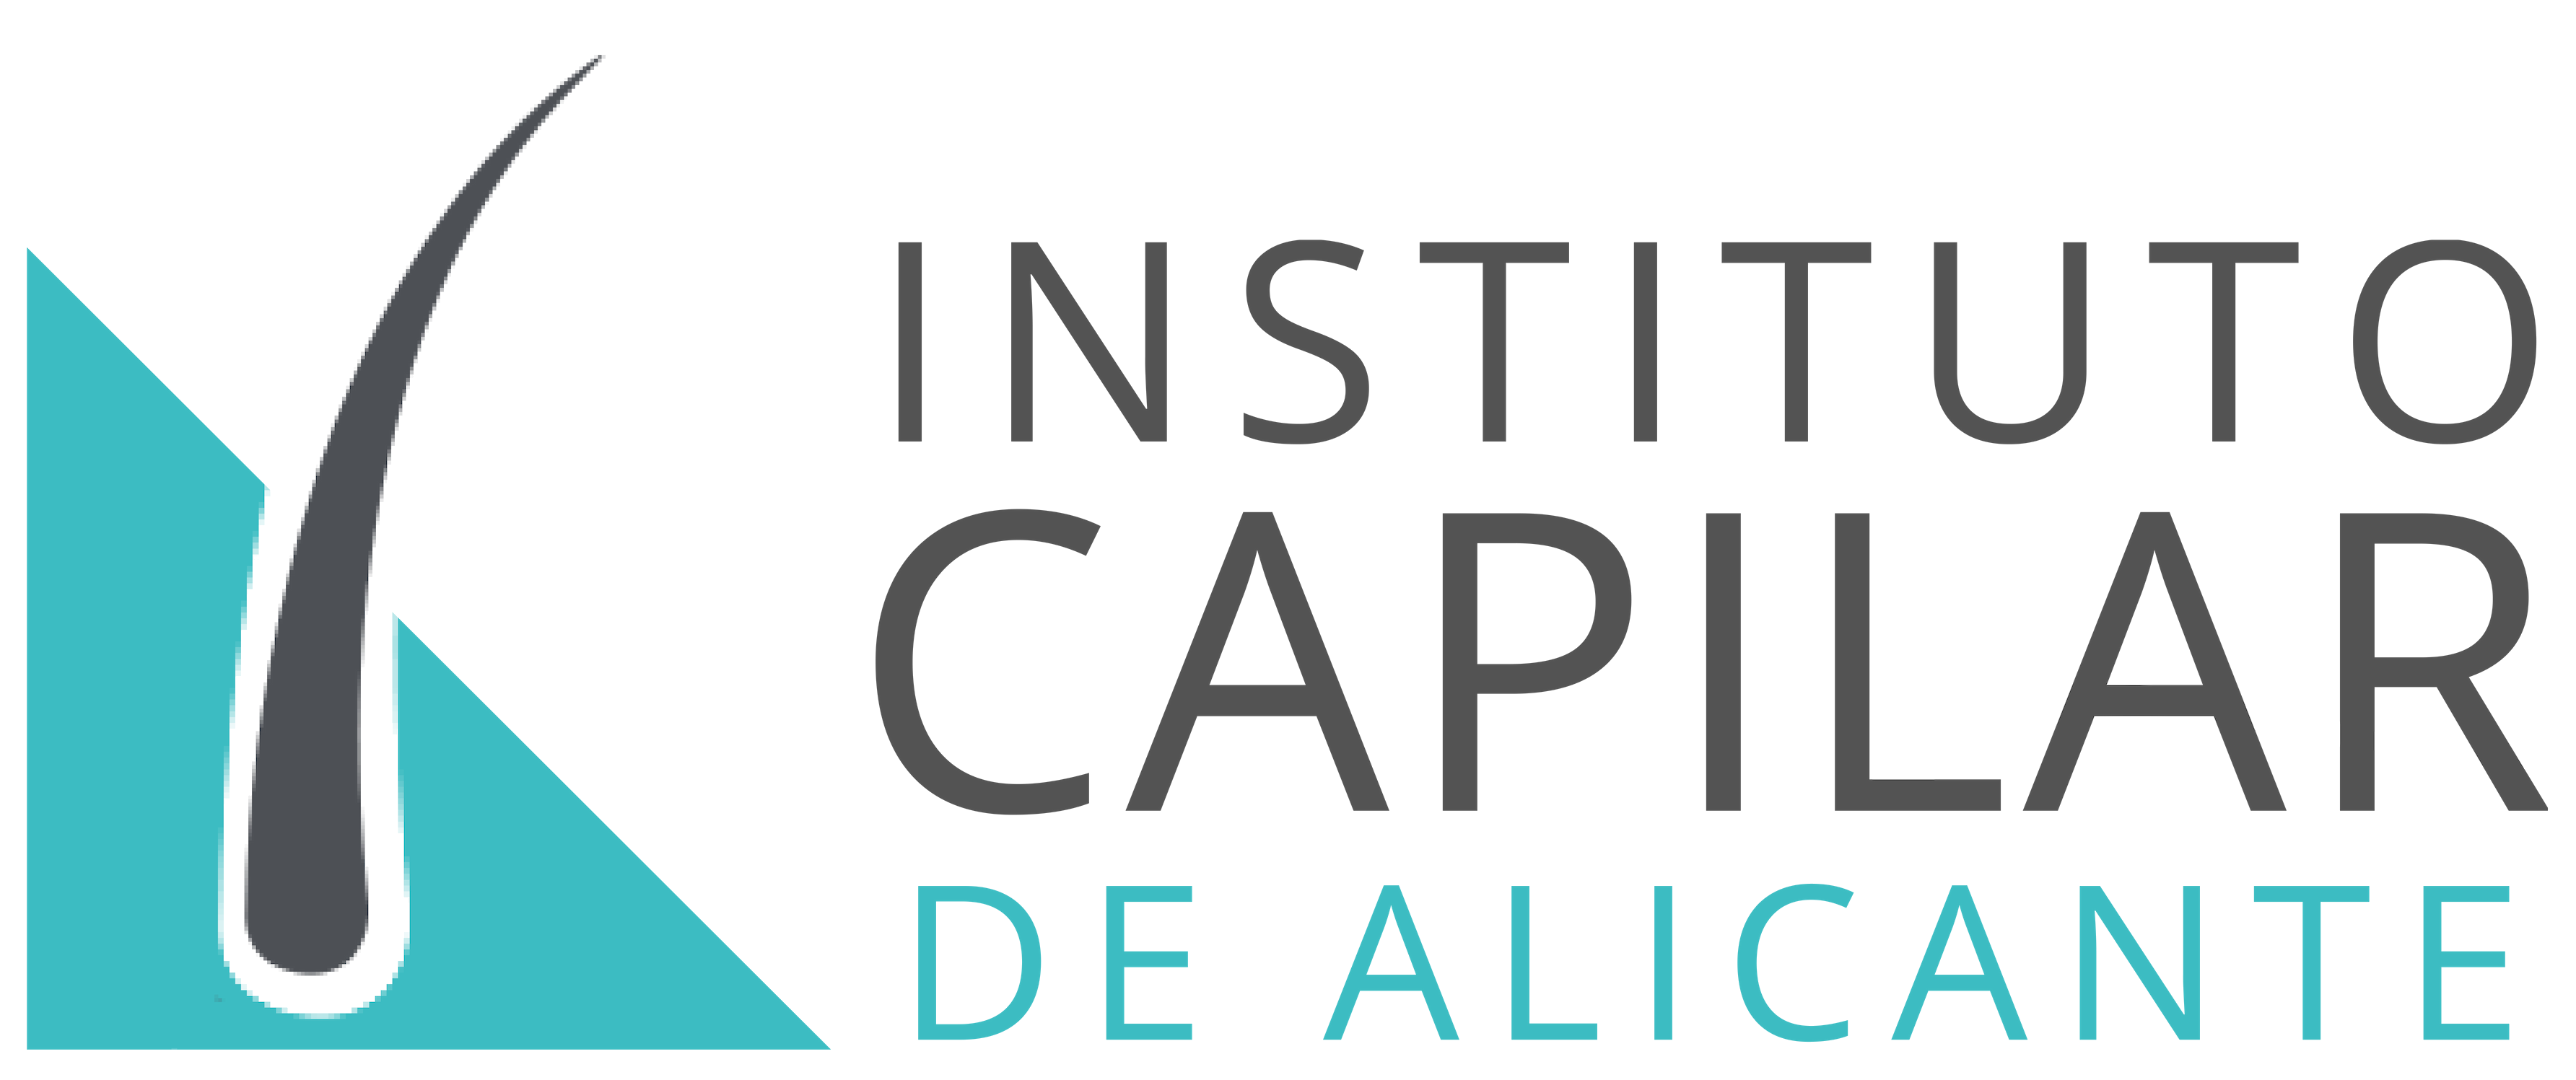 Instituto Capilar de Alicante